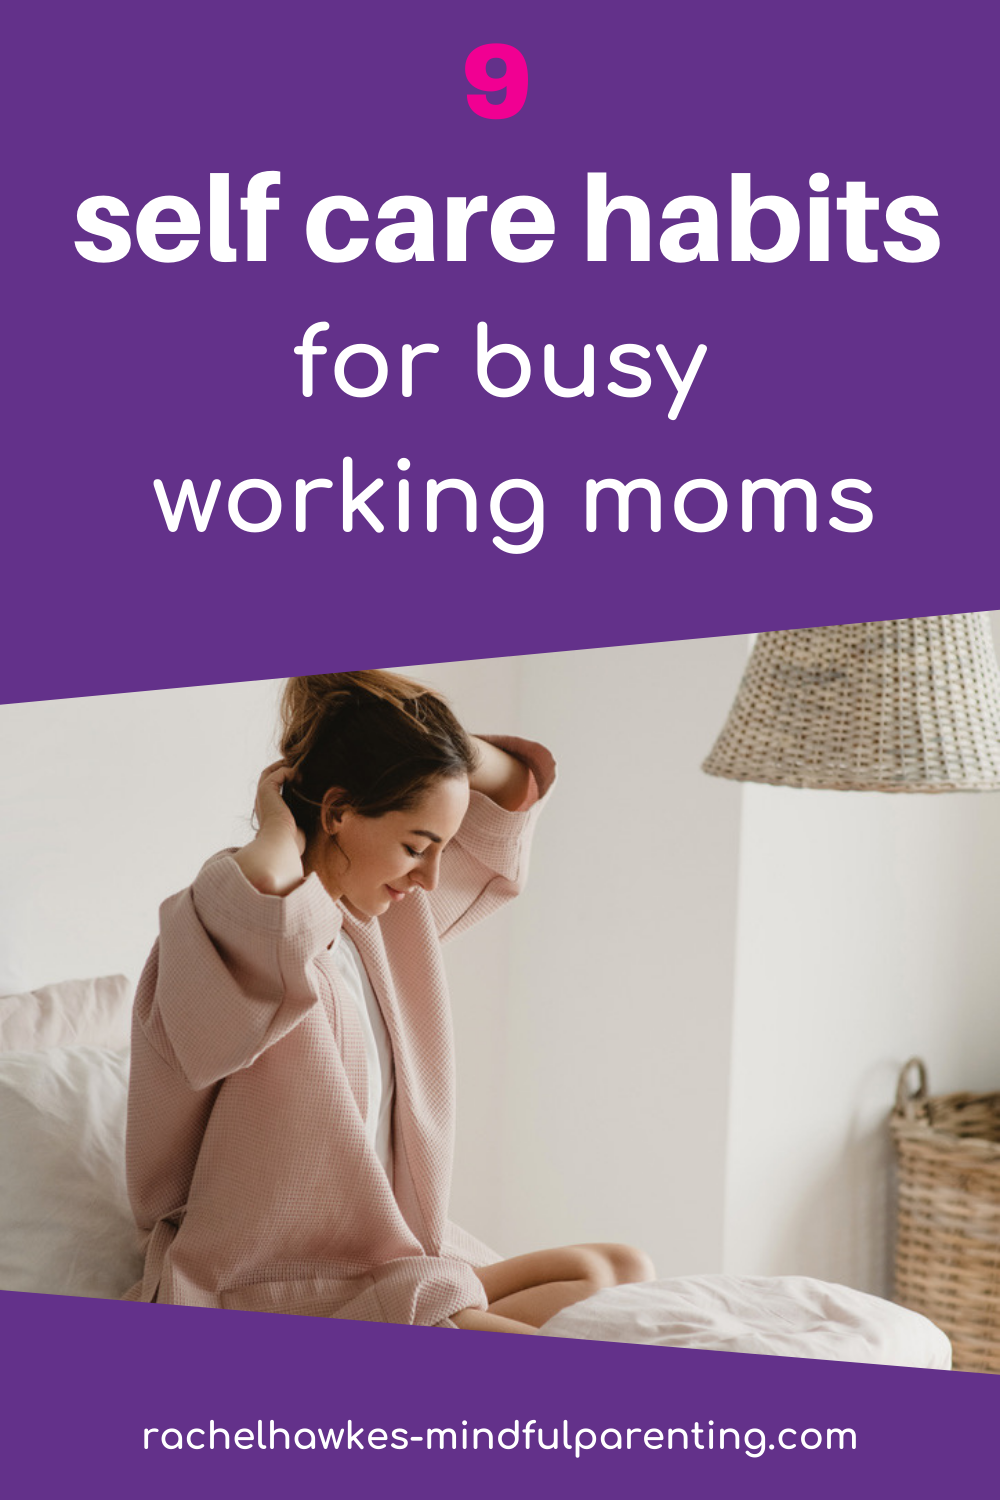 self care for moms - 9 self care rituals